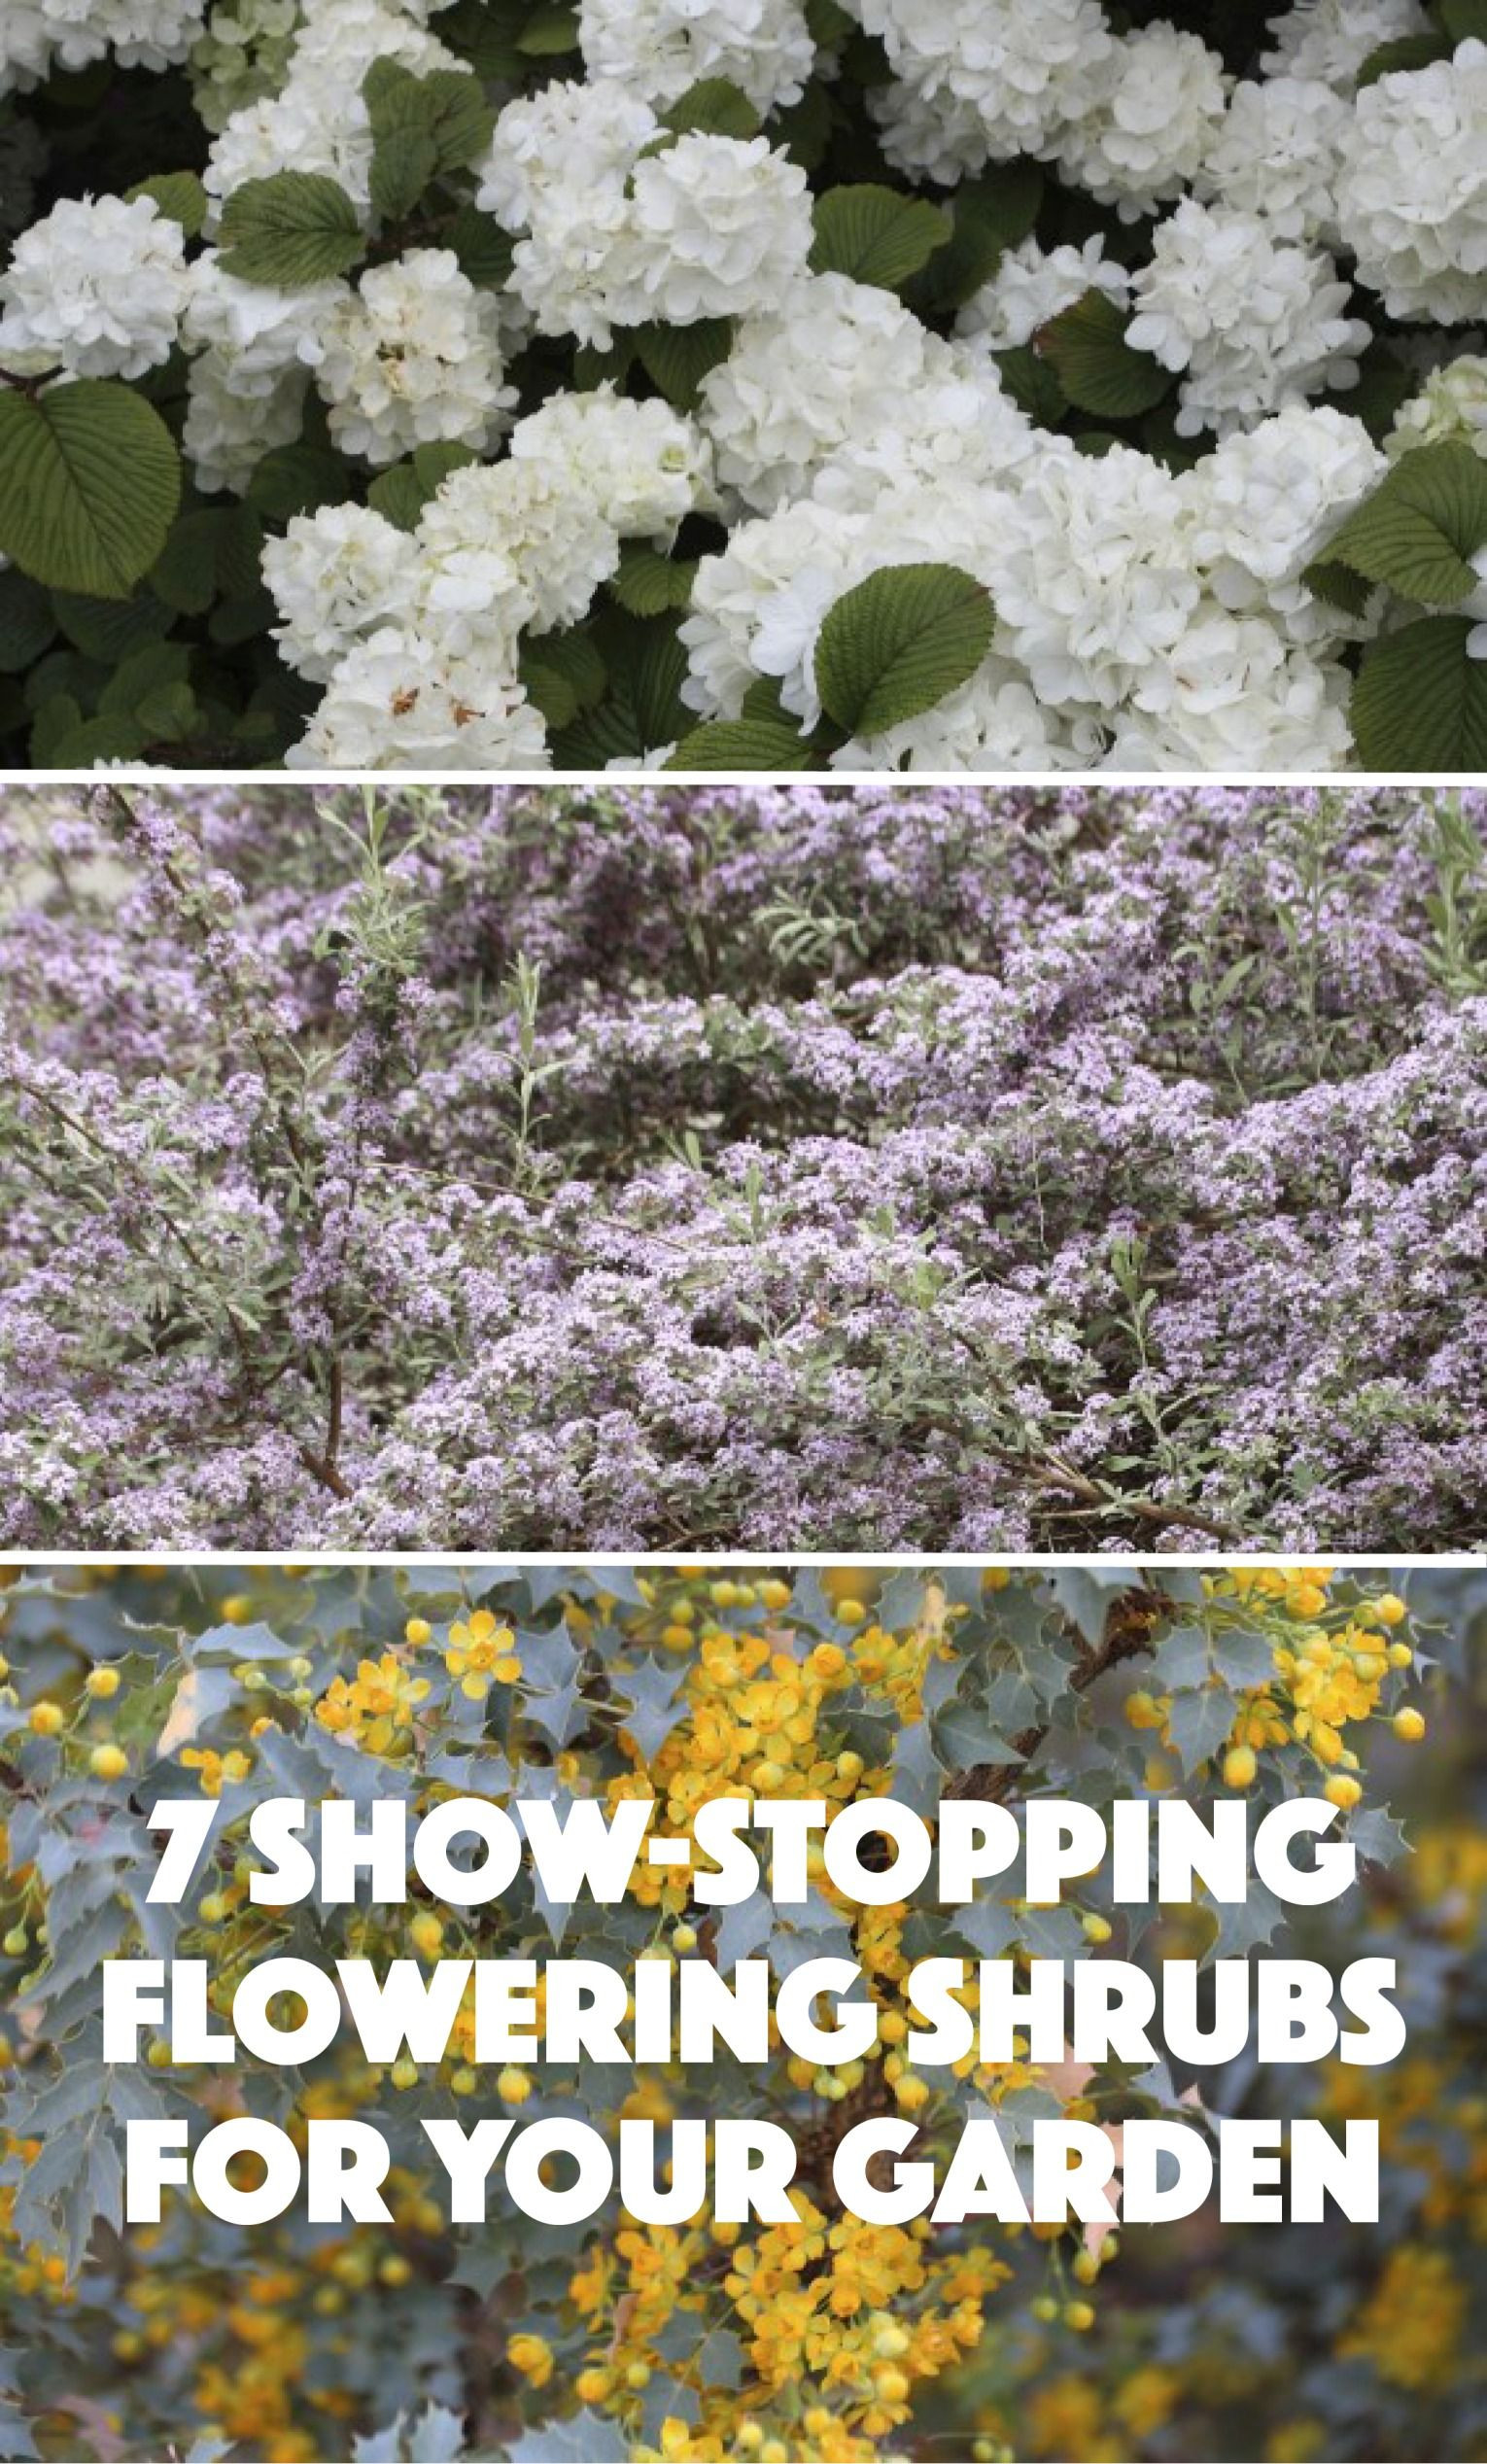 7 Show Stopping Flowering Shrubs for Your Garden